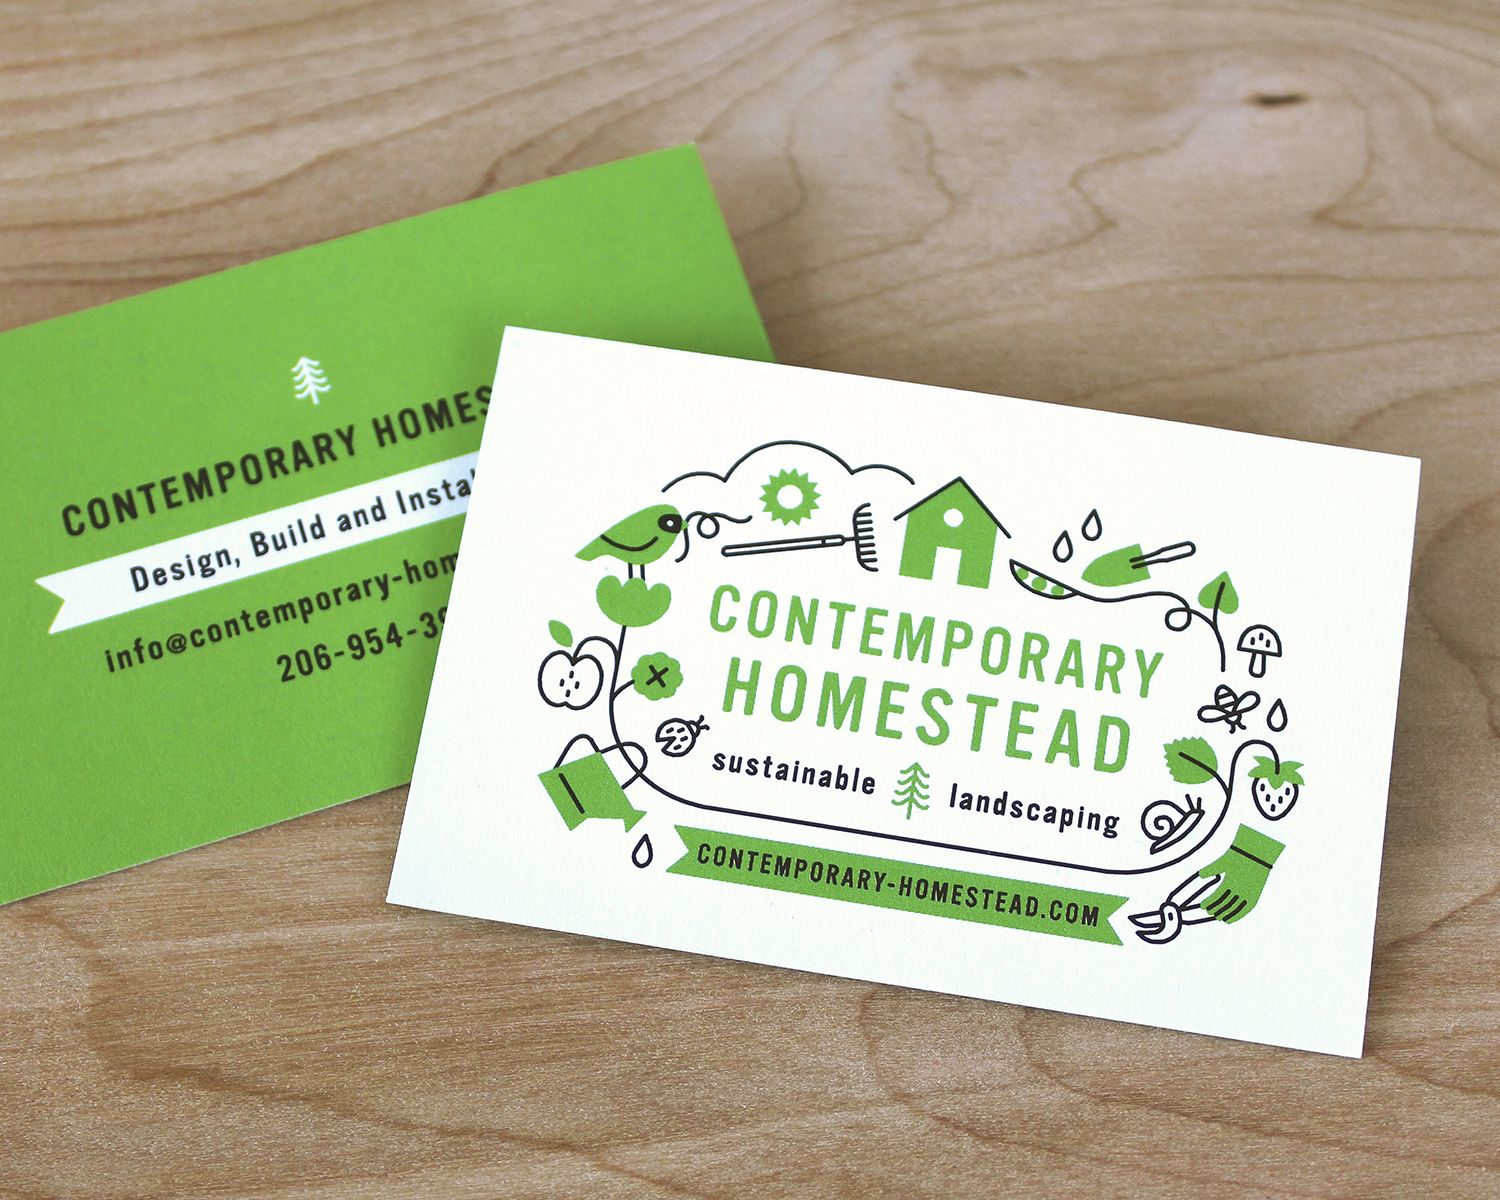 Contemporary homestead sustainable landscaping logo and business contemporary homestead sustainable landscaping logo and business card design 2015 megan noller holt all rights reserved reheart Choice Image